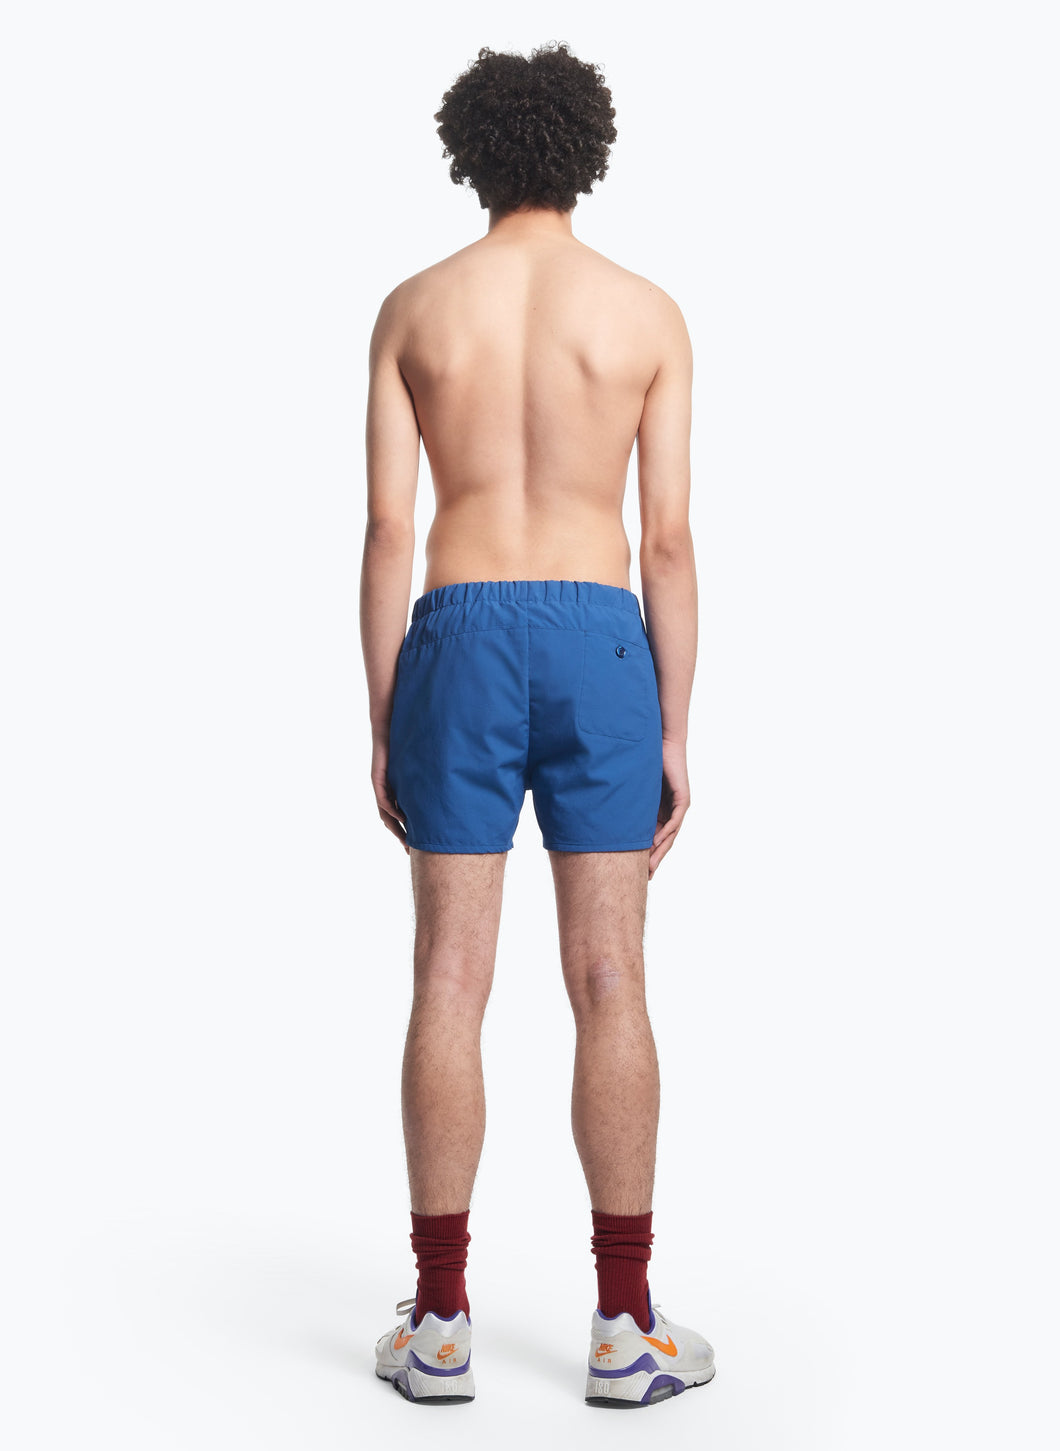 Swim Shorts with Italian Pockets in Royal Blue Ripstop